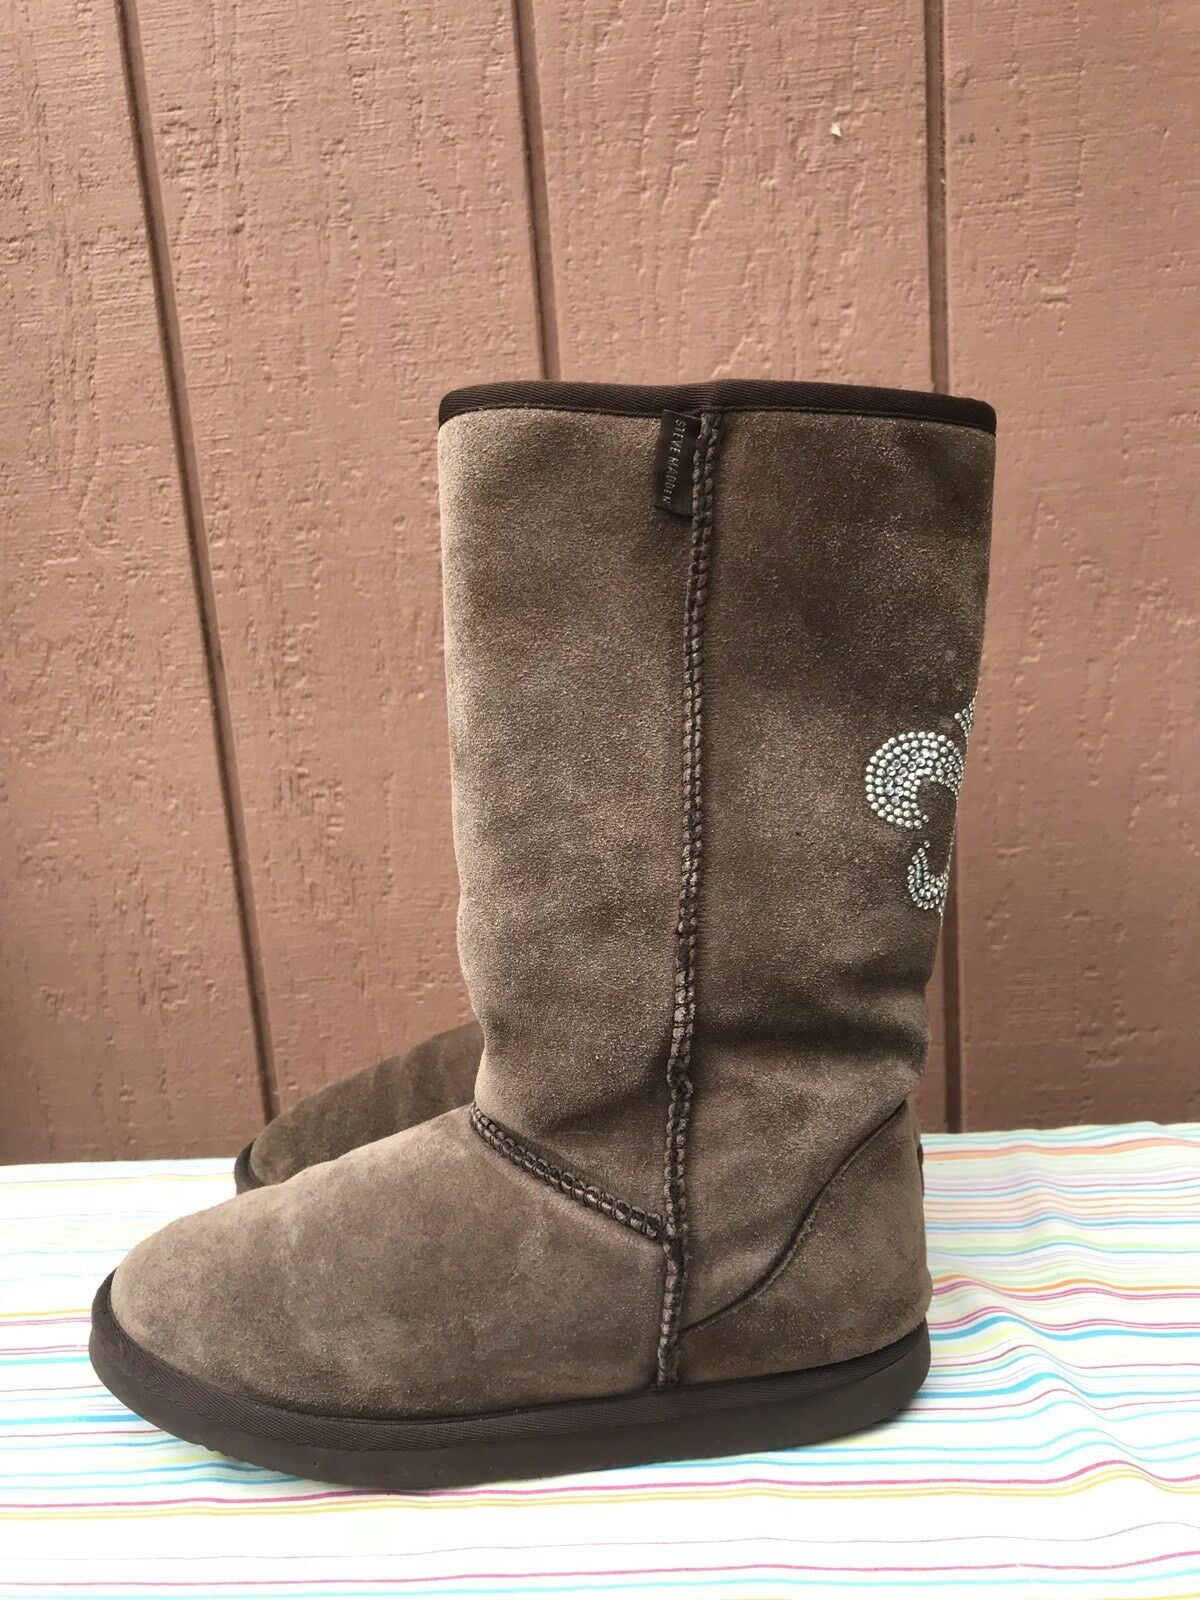 STEVE MADDEN WOMEN'S FAUX US 7.5 LEATHER UPPERS FAUX WOMEN'S FUR LINED PULL ON  BROWN BOOTS e2cb6b